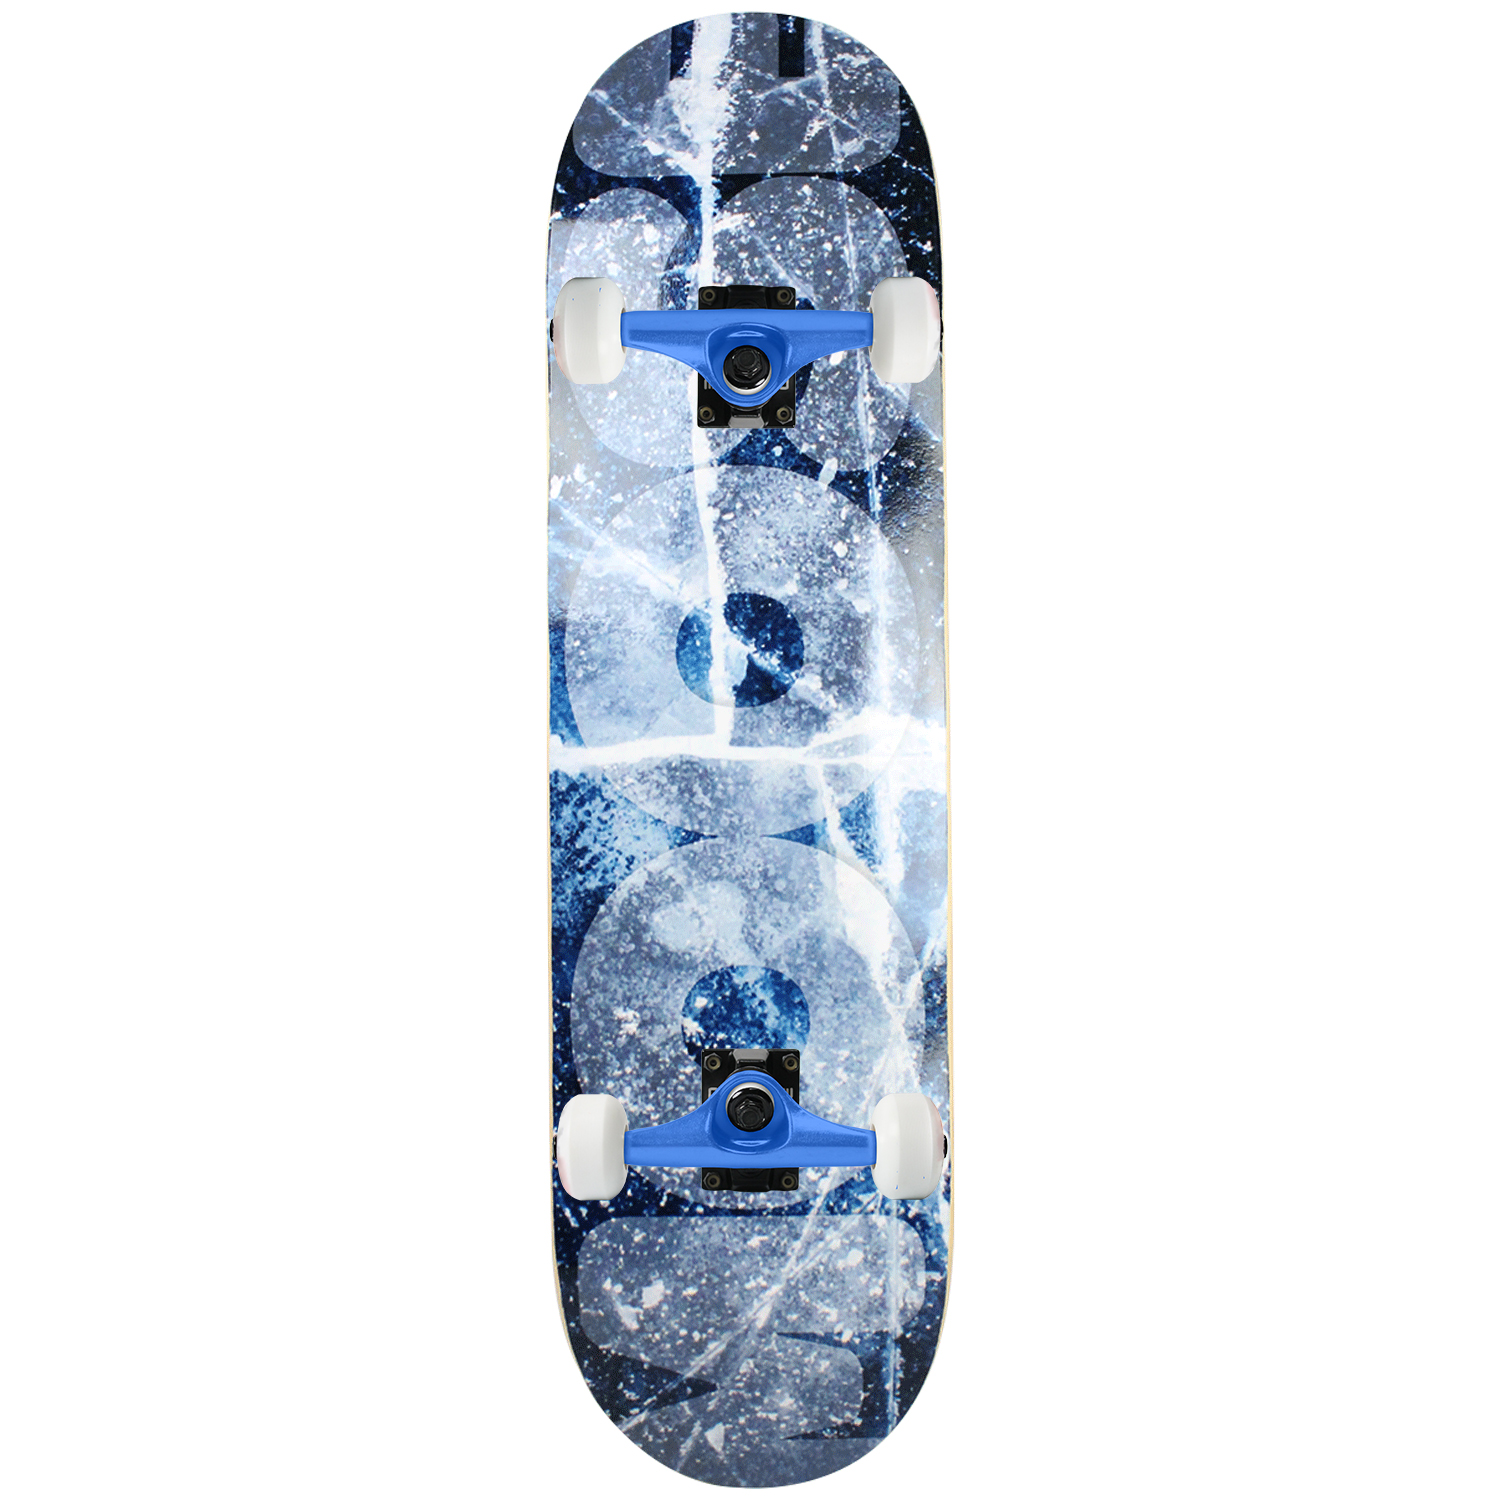 Moose skateboard Complete Cracked Ice 8.25in